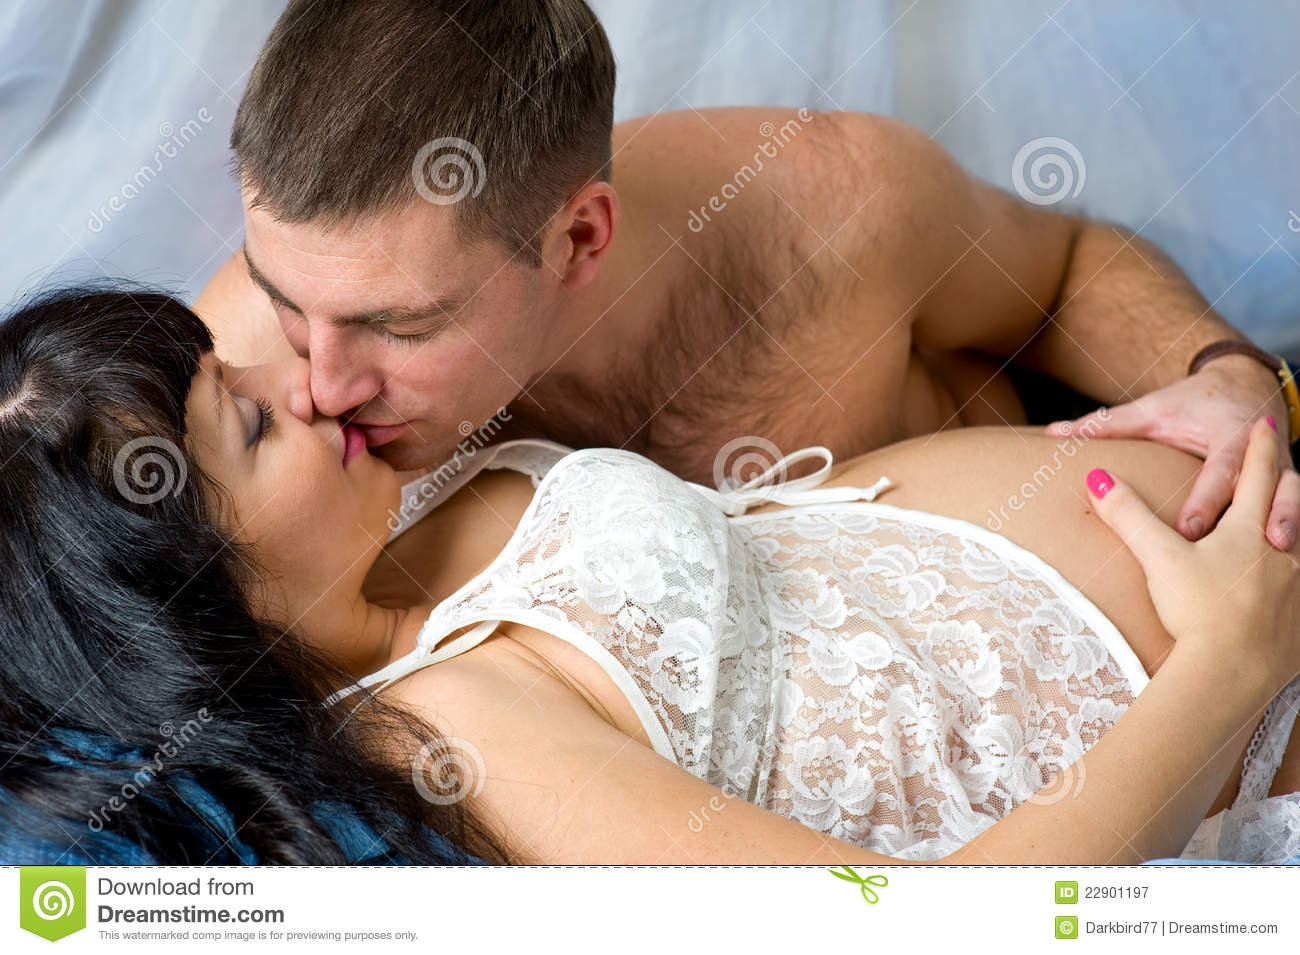 Bedroom Kissing Games Pregnant Couple Kissing Stock Image Image Of Family Making Love Ladies